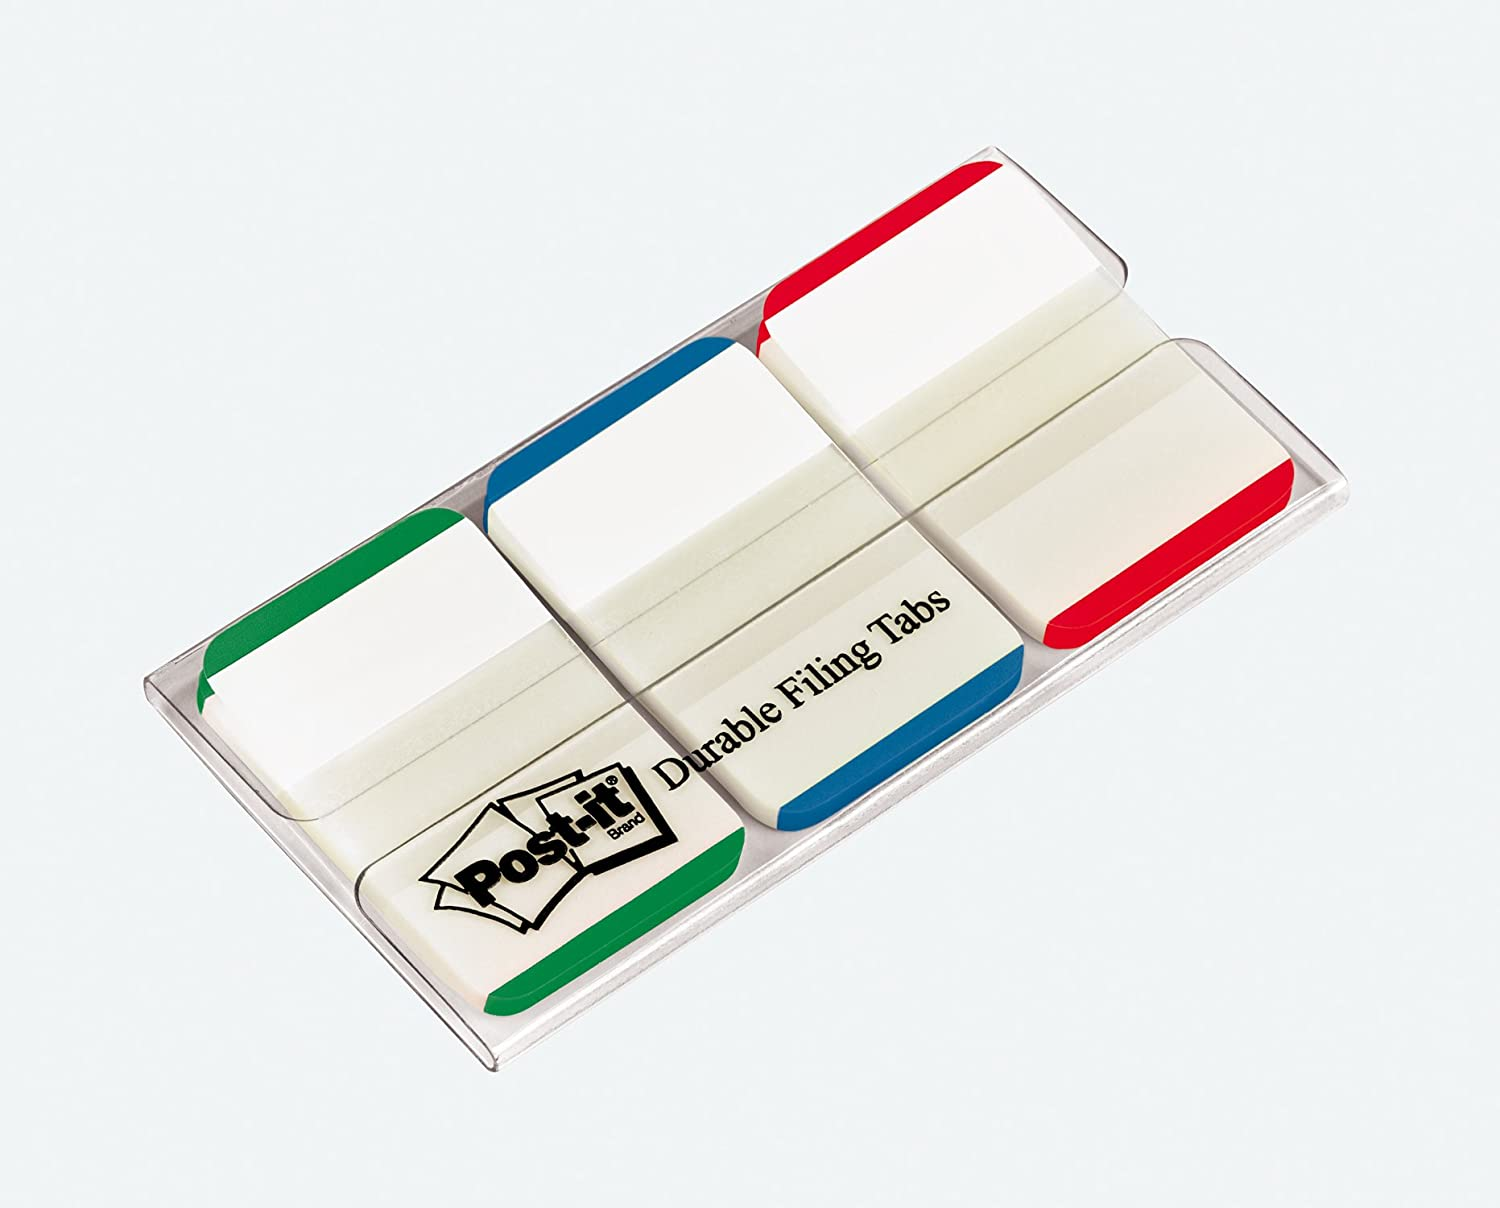 Orange Sticks Securely Green Durable Yellow Solid 6//Color 1 in Aqua Writable 686-ALOPRYT 36//Dispenser, Removes Cleanly Repositionable Pink Post-it Tabs Red